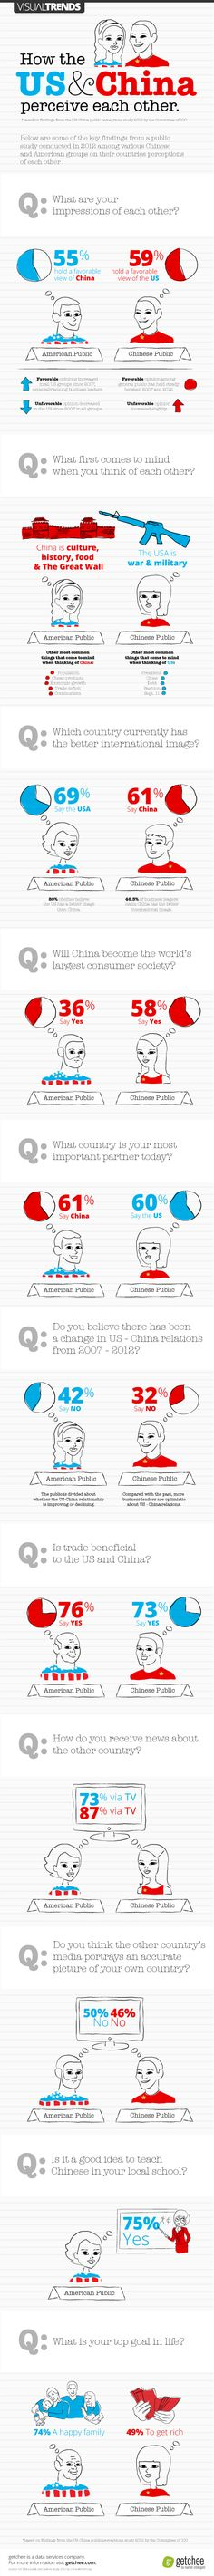 U.S. & China Cross-Cultural Perceptions